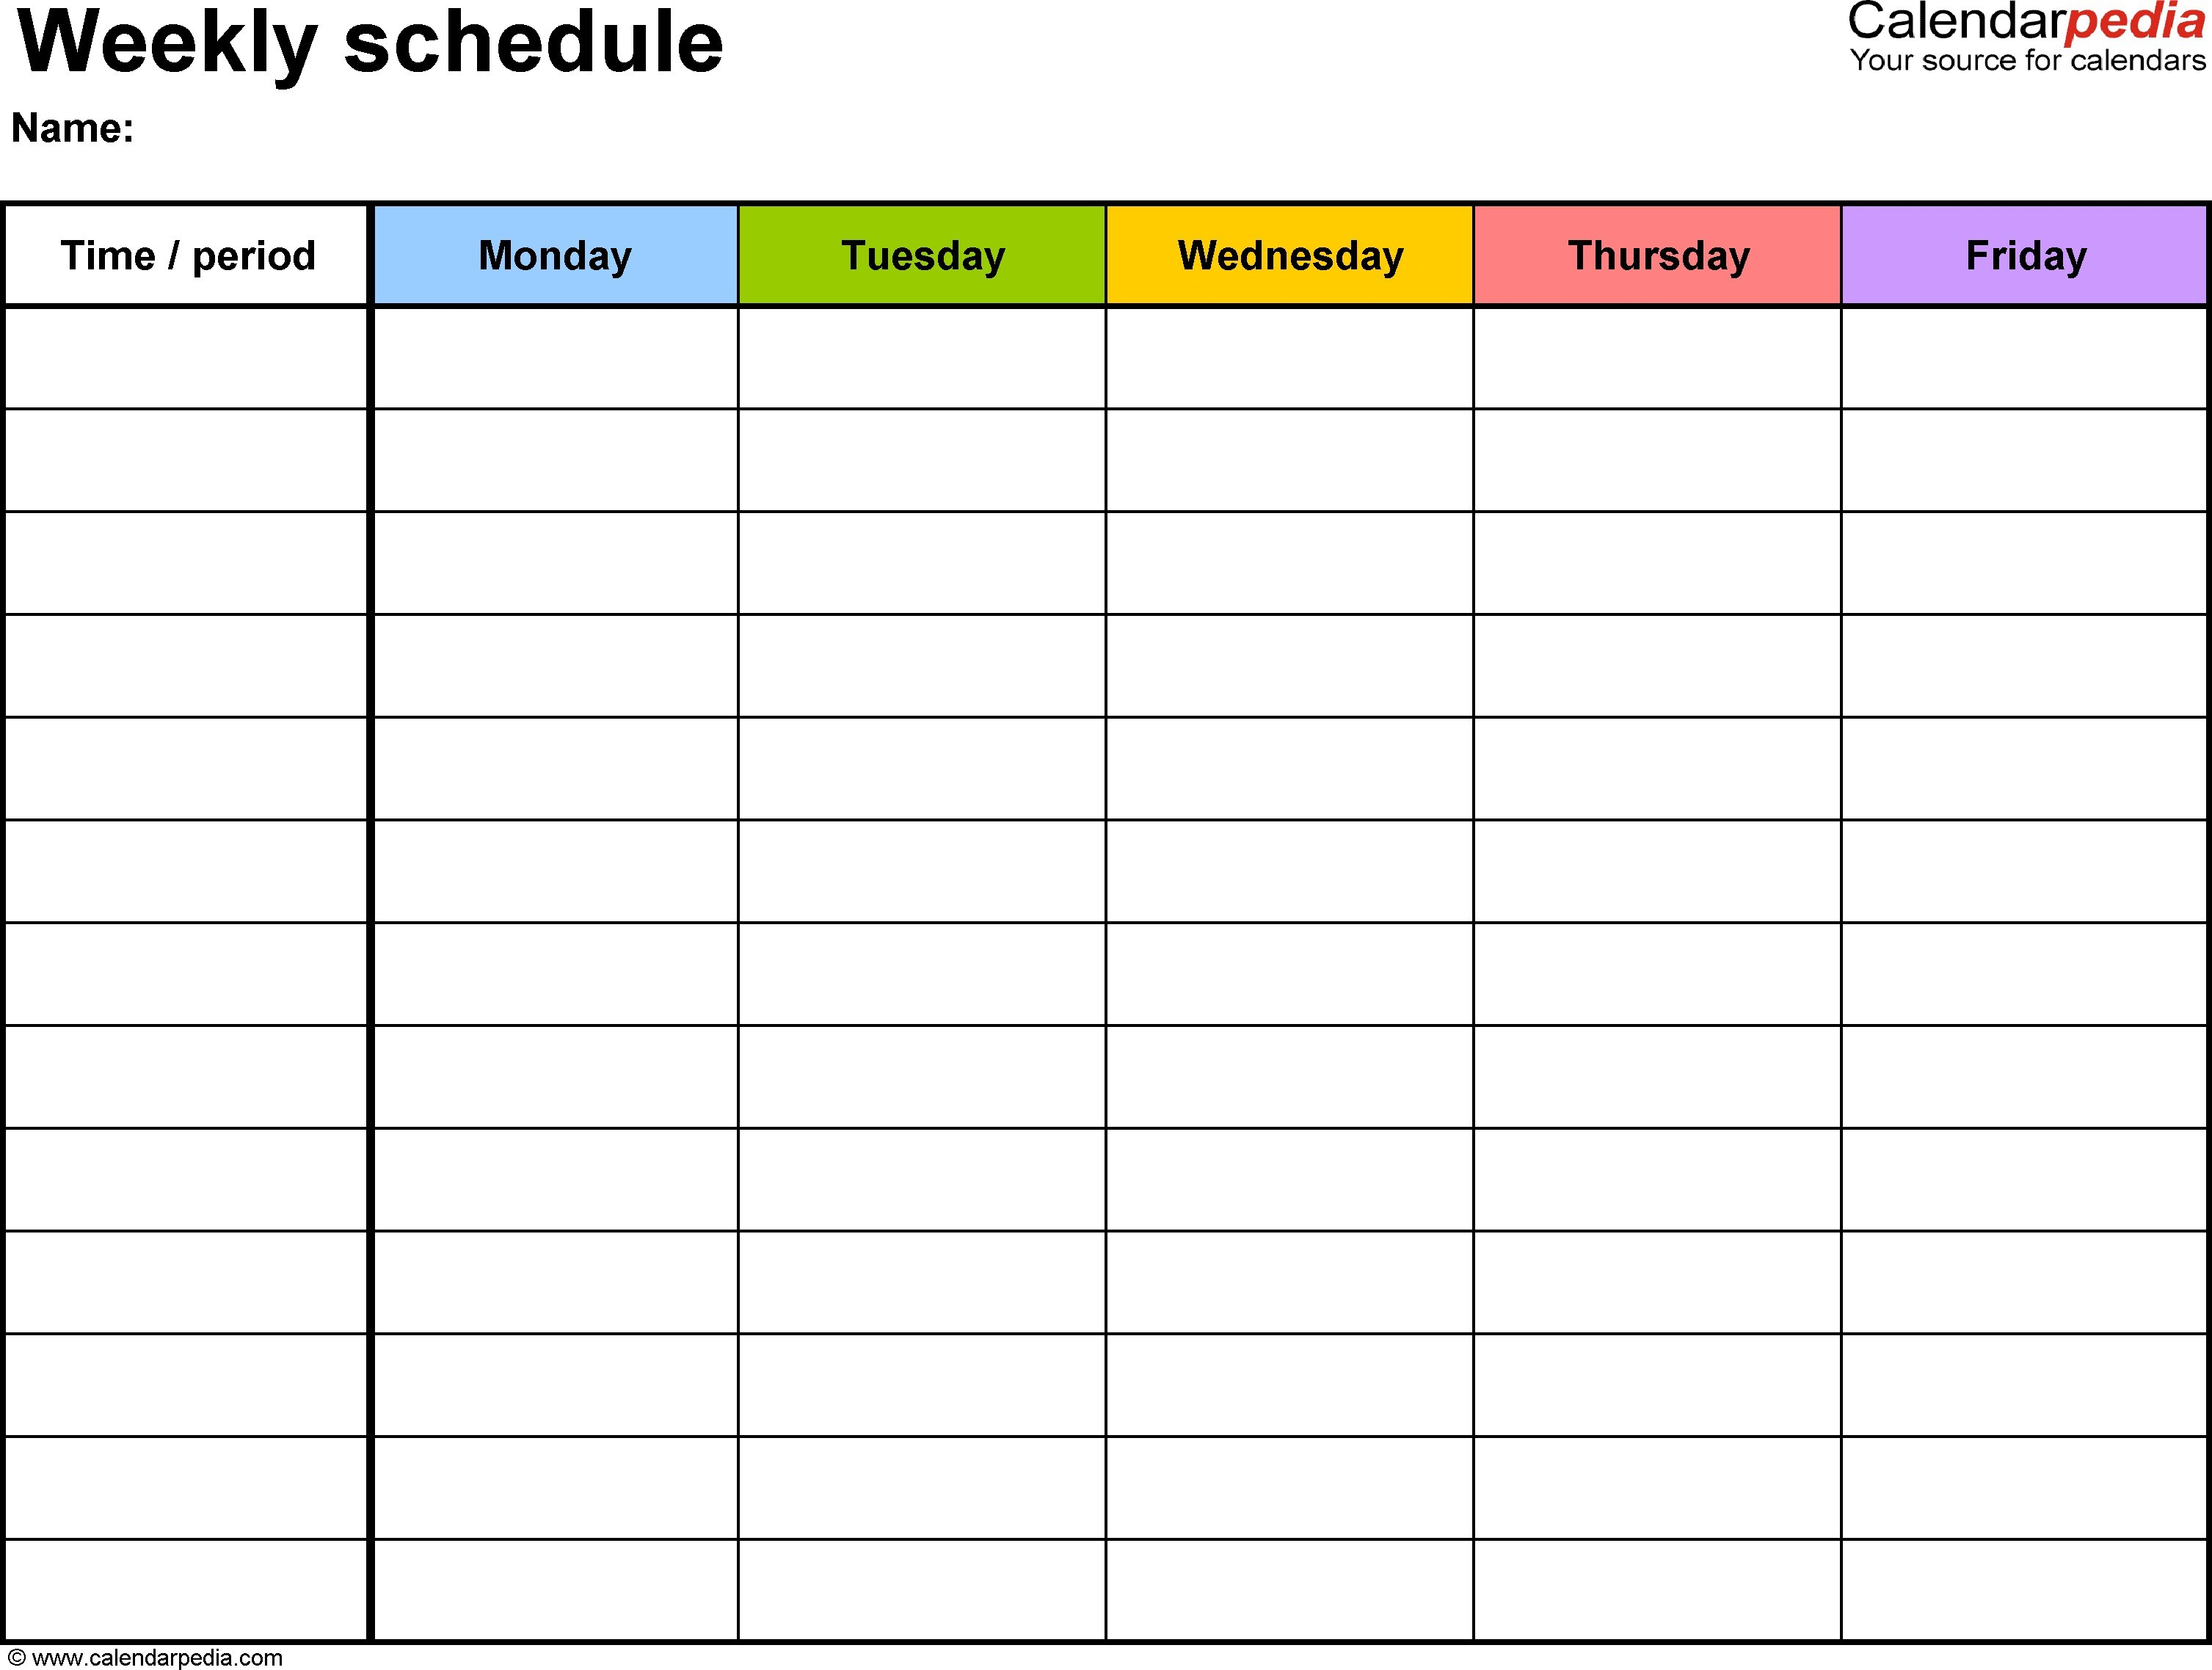 Blank Weekly Calendar With Time Slots Starting At 5Am